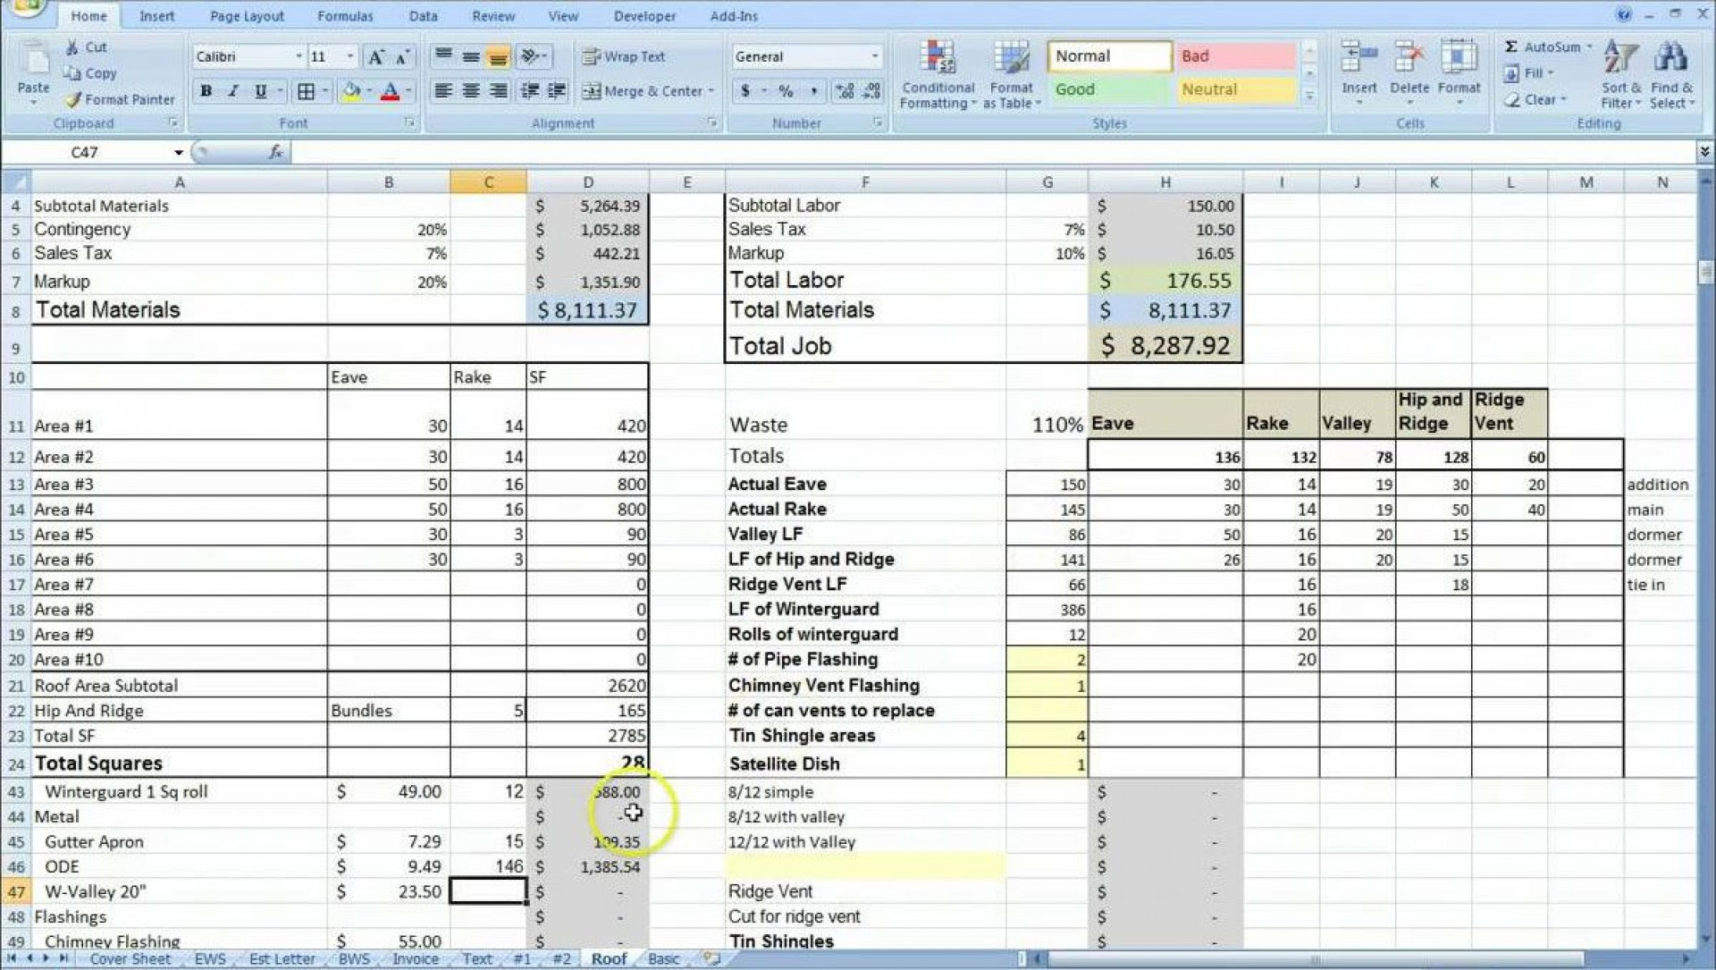 free job costing excel spreadsheet job order costing excel spreadsheet job costing spreadsheet excel construction job costing spreadsheet excel  Job Costing Spreadsheet Excel With 002 Template Ideas Construction Job Cost Spreadsheet With Estimate Job Costing Spreadsheet Excel Google Spreadshee